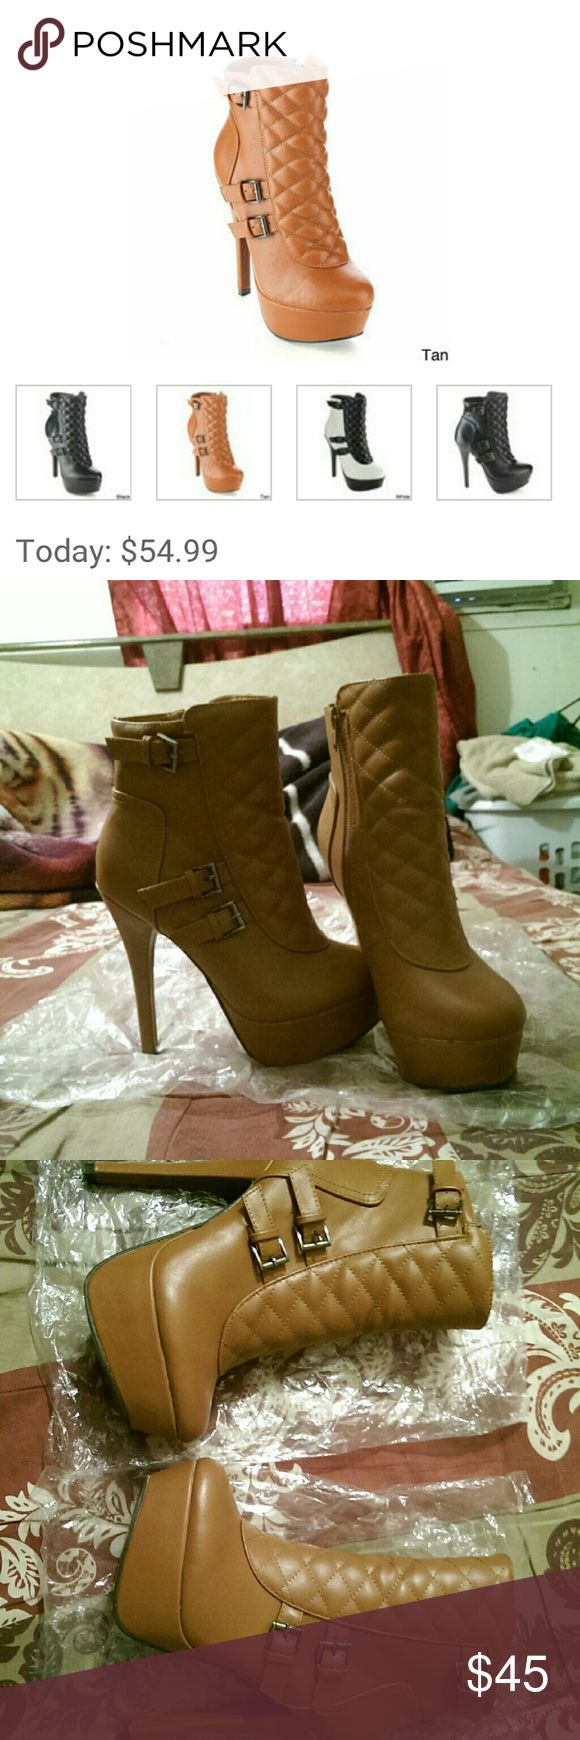 C-label tan ankle booties MATERIAL: synthetic leather HEIGHT: ankle TOE SHAPE: almond HEEL HEIGHT:5 in HEEL PLATFORM: 1.5 in NO BOX  ALL RESONABLE OFFERS ARE WELCOME ;) c label Shoes Ankle Boots & Booties